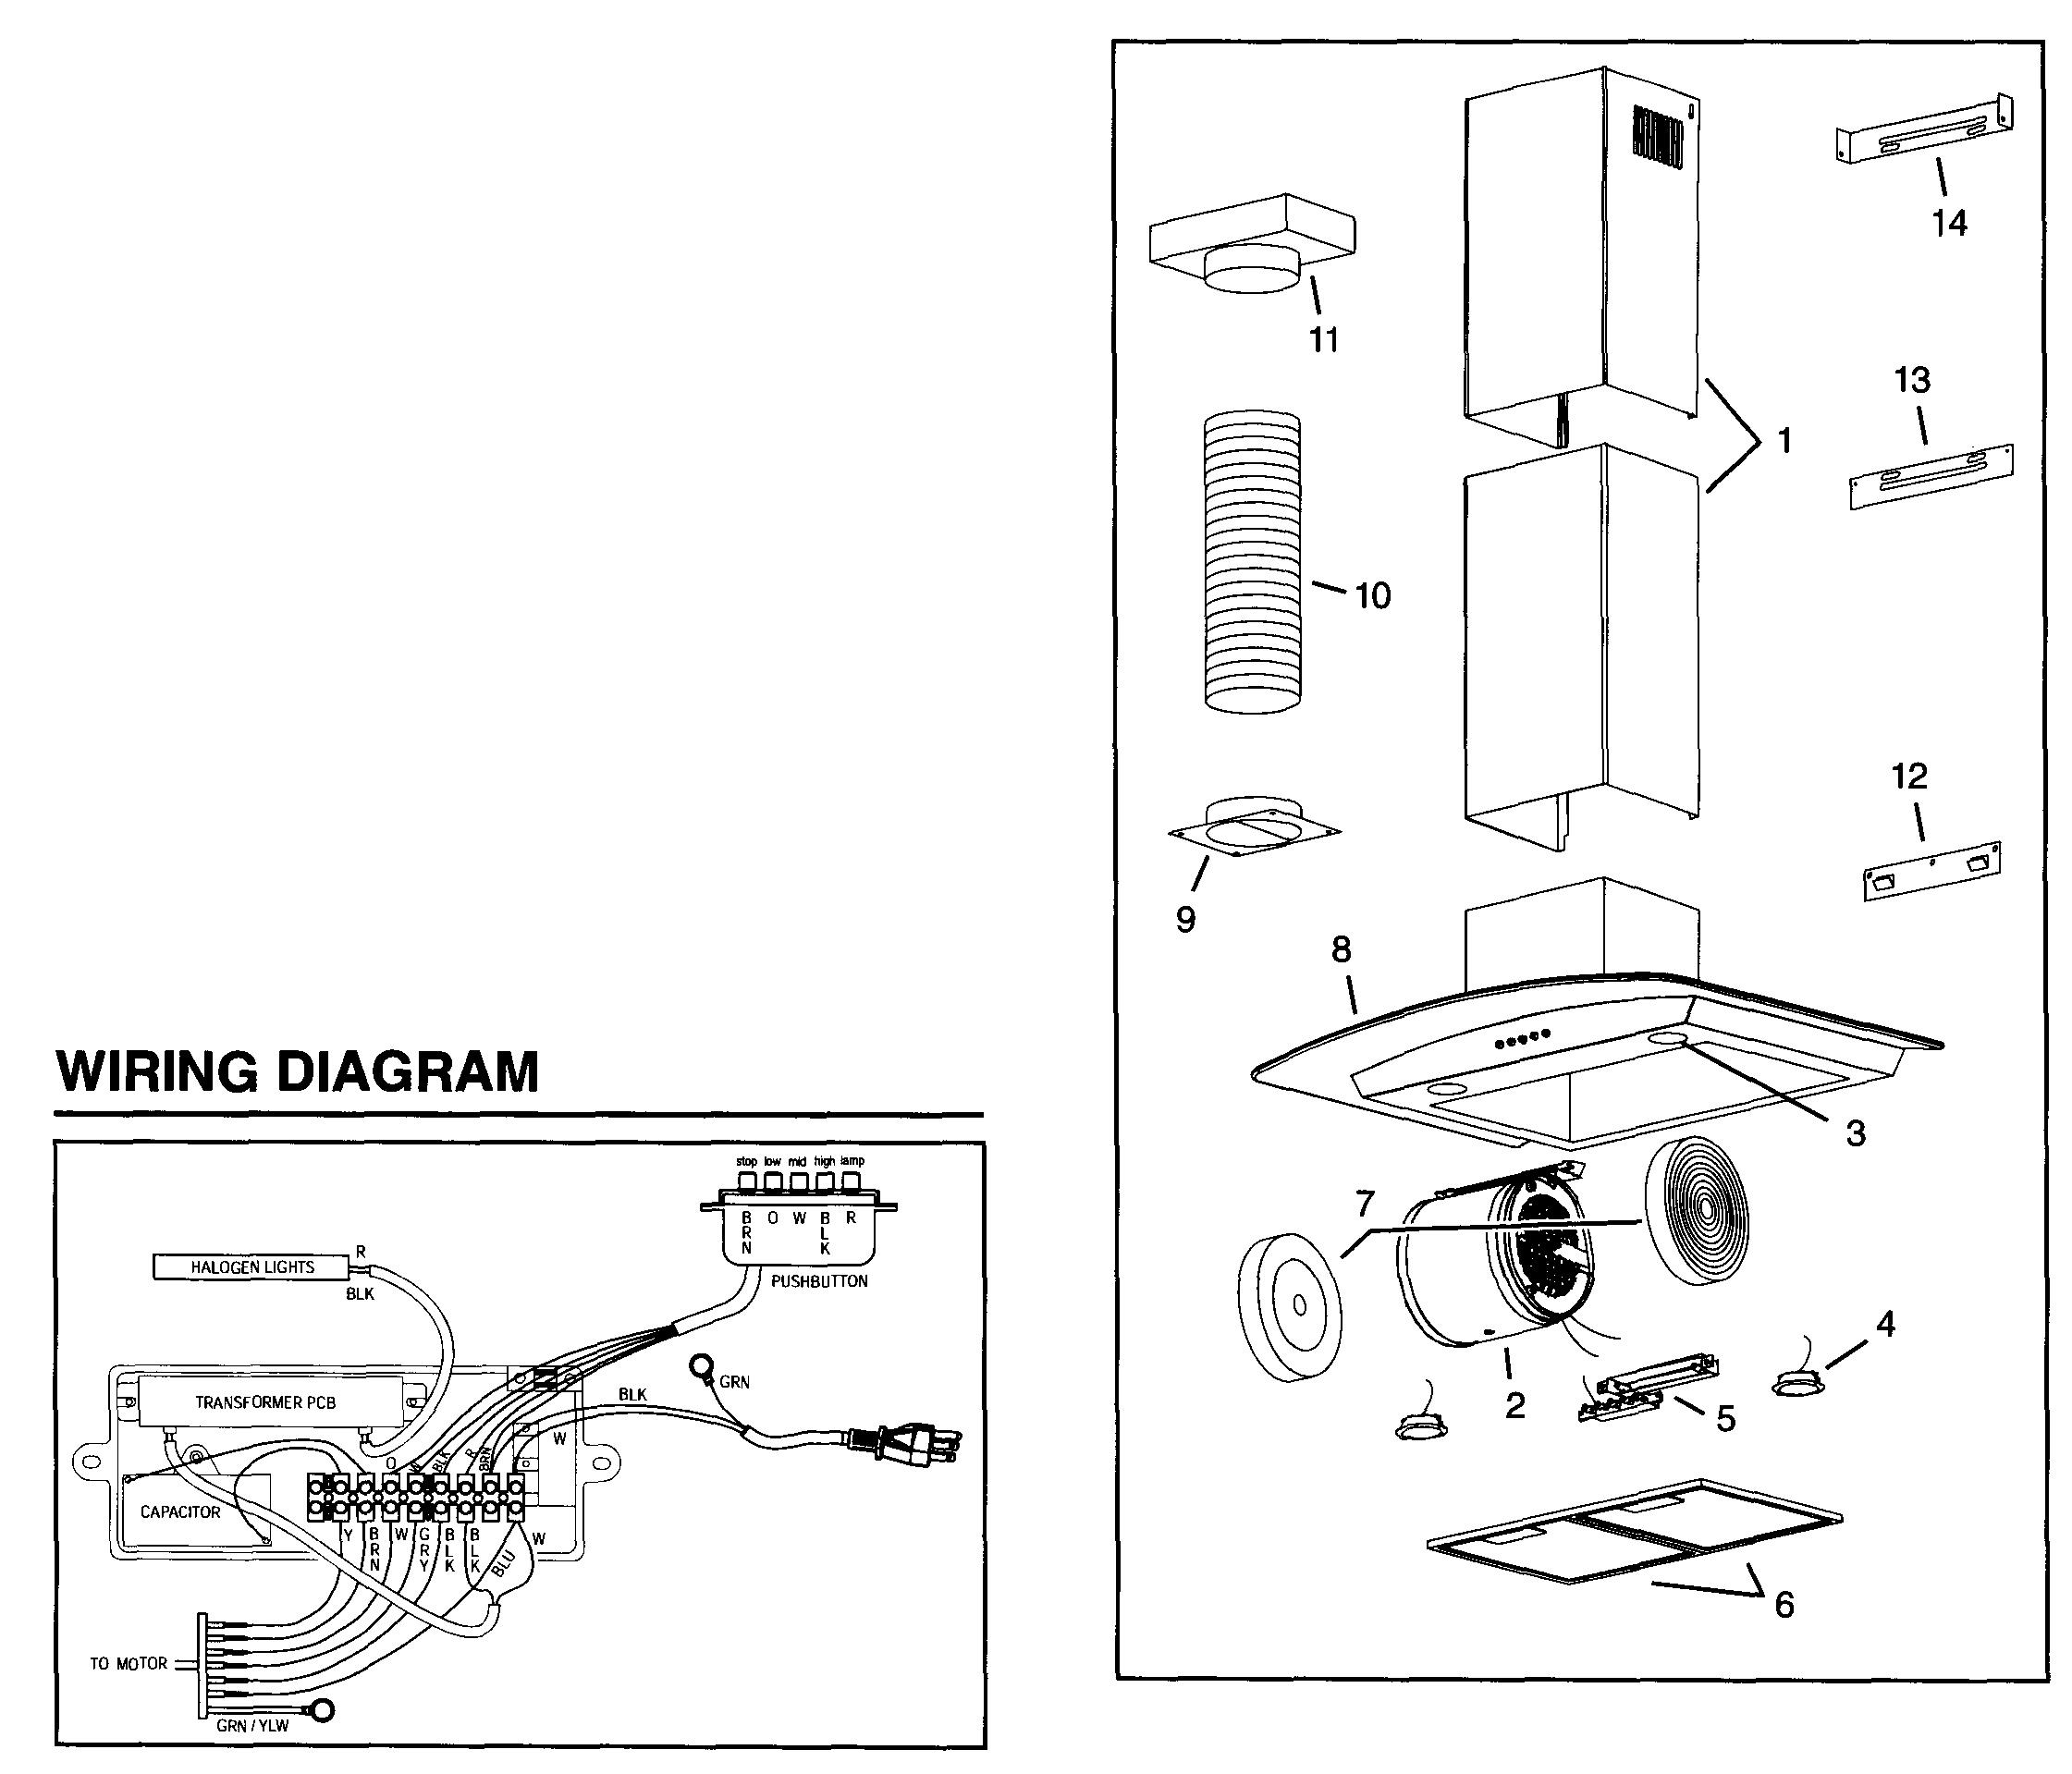 Range Hood Wiring Diagram : 25 Wiring Diagram Images